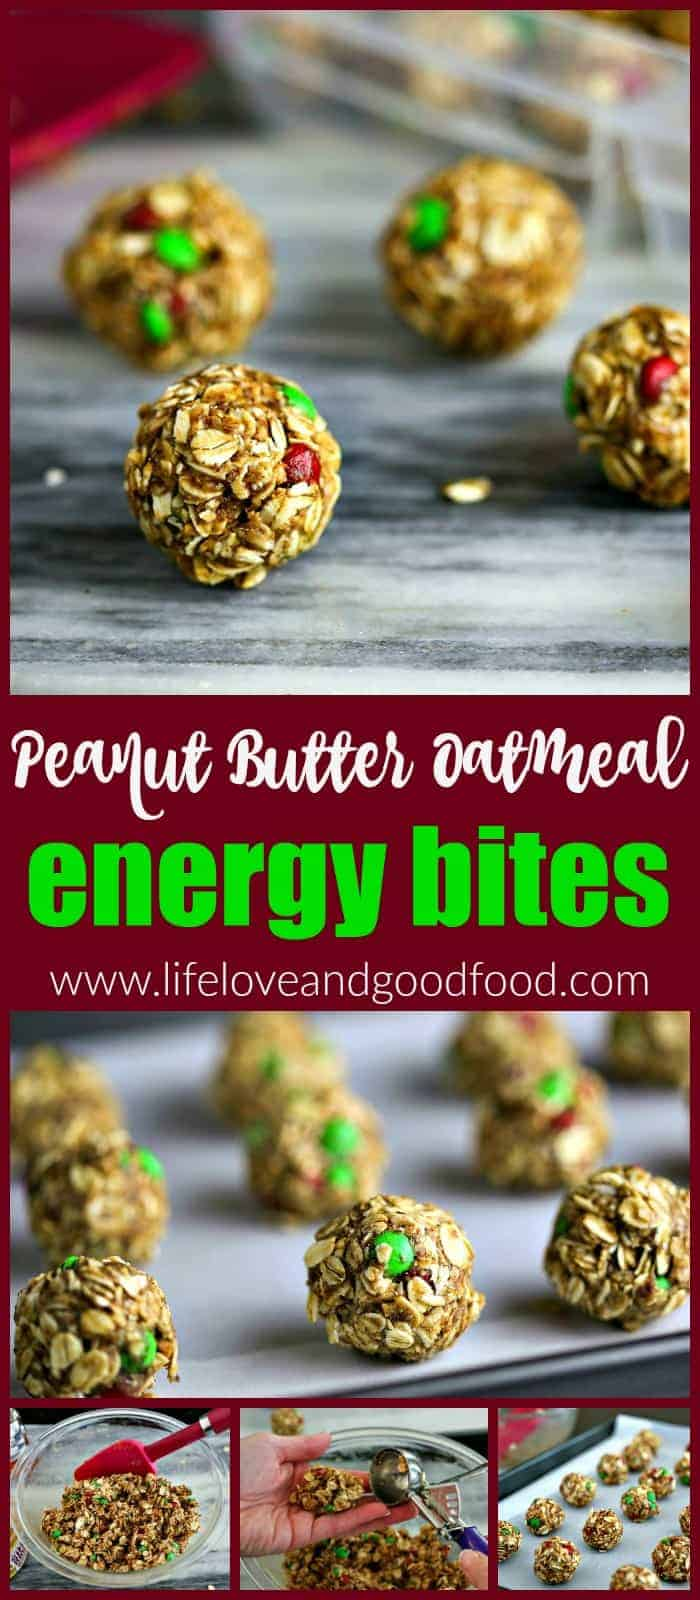 Peanut Butter Oatmeal Energy Bites. Satisfy your cookie craving with these tasty no-guilt, no-bake energy bites sweetened with honey.